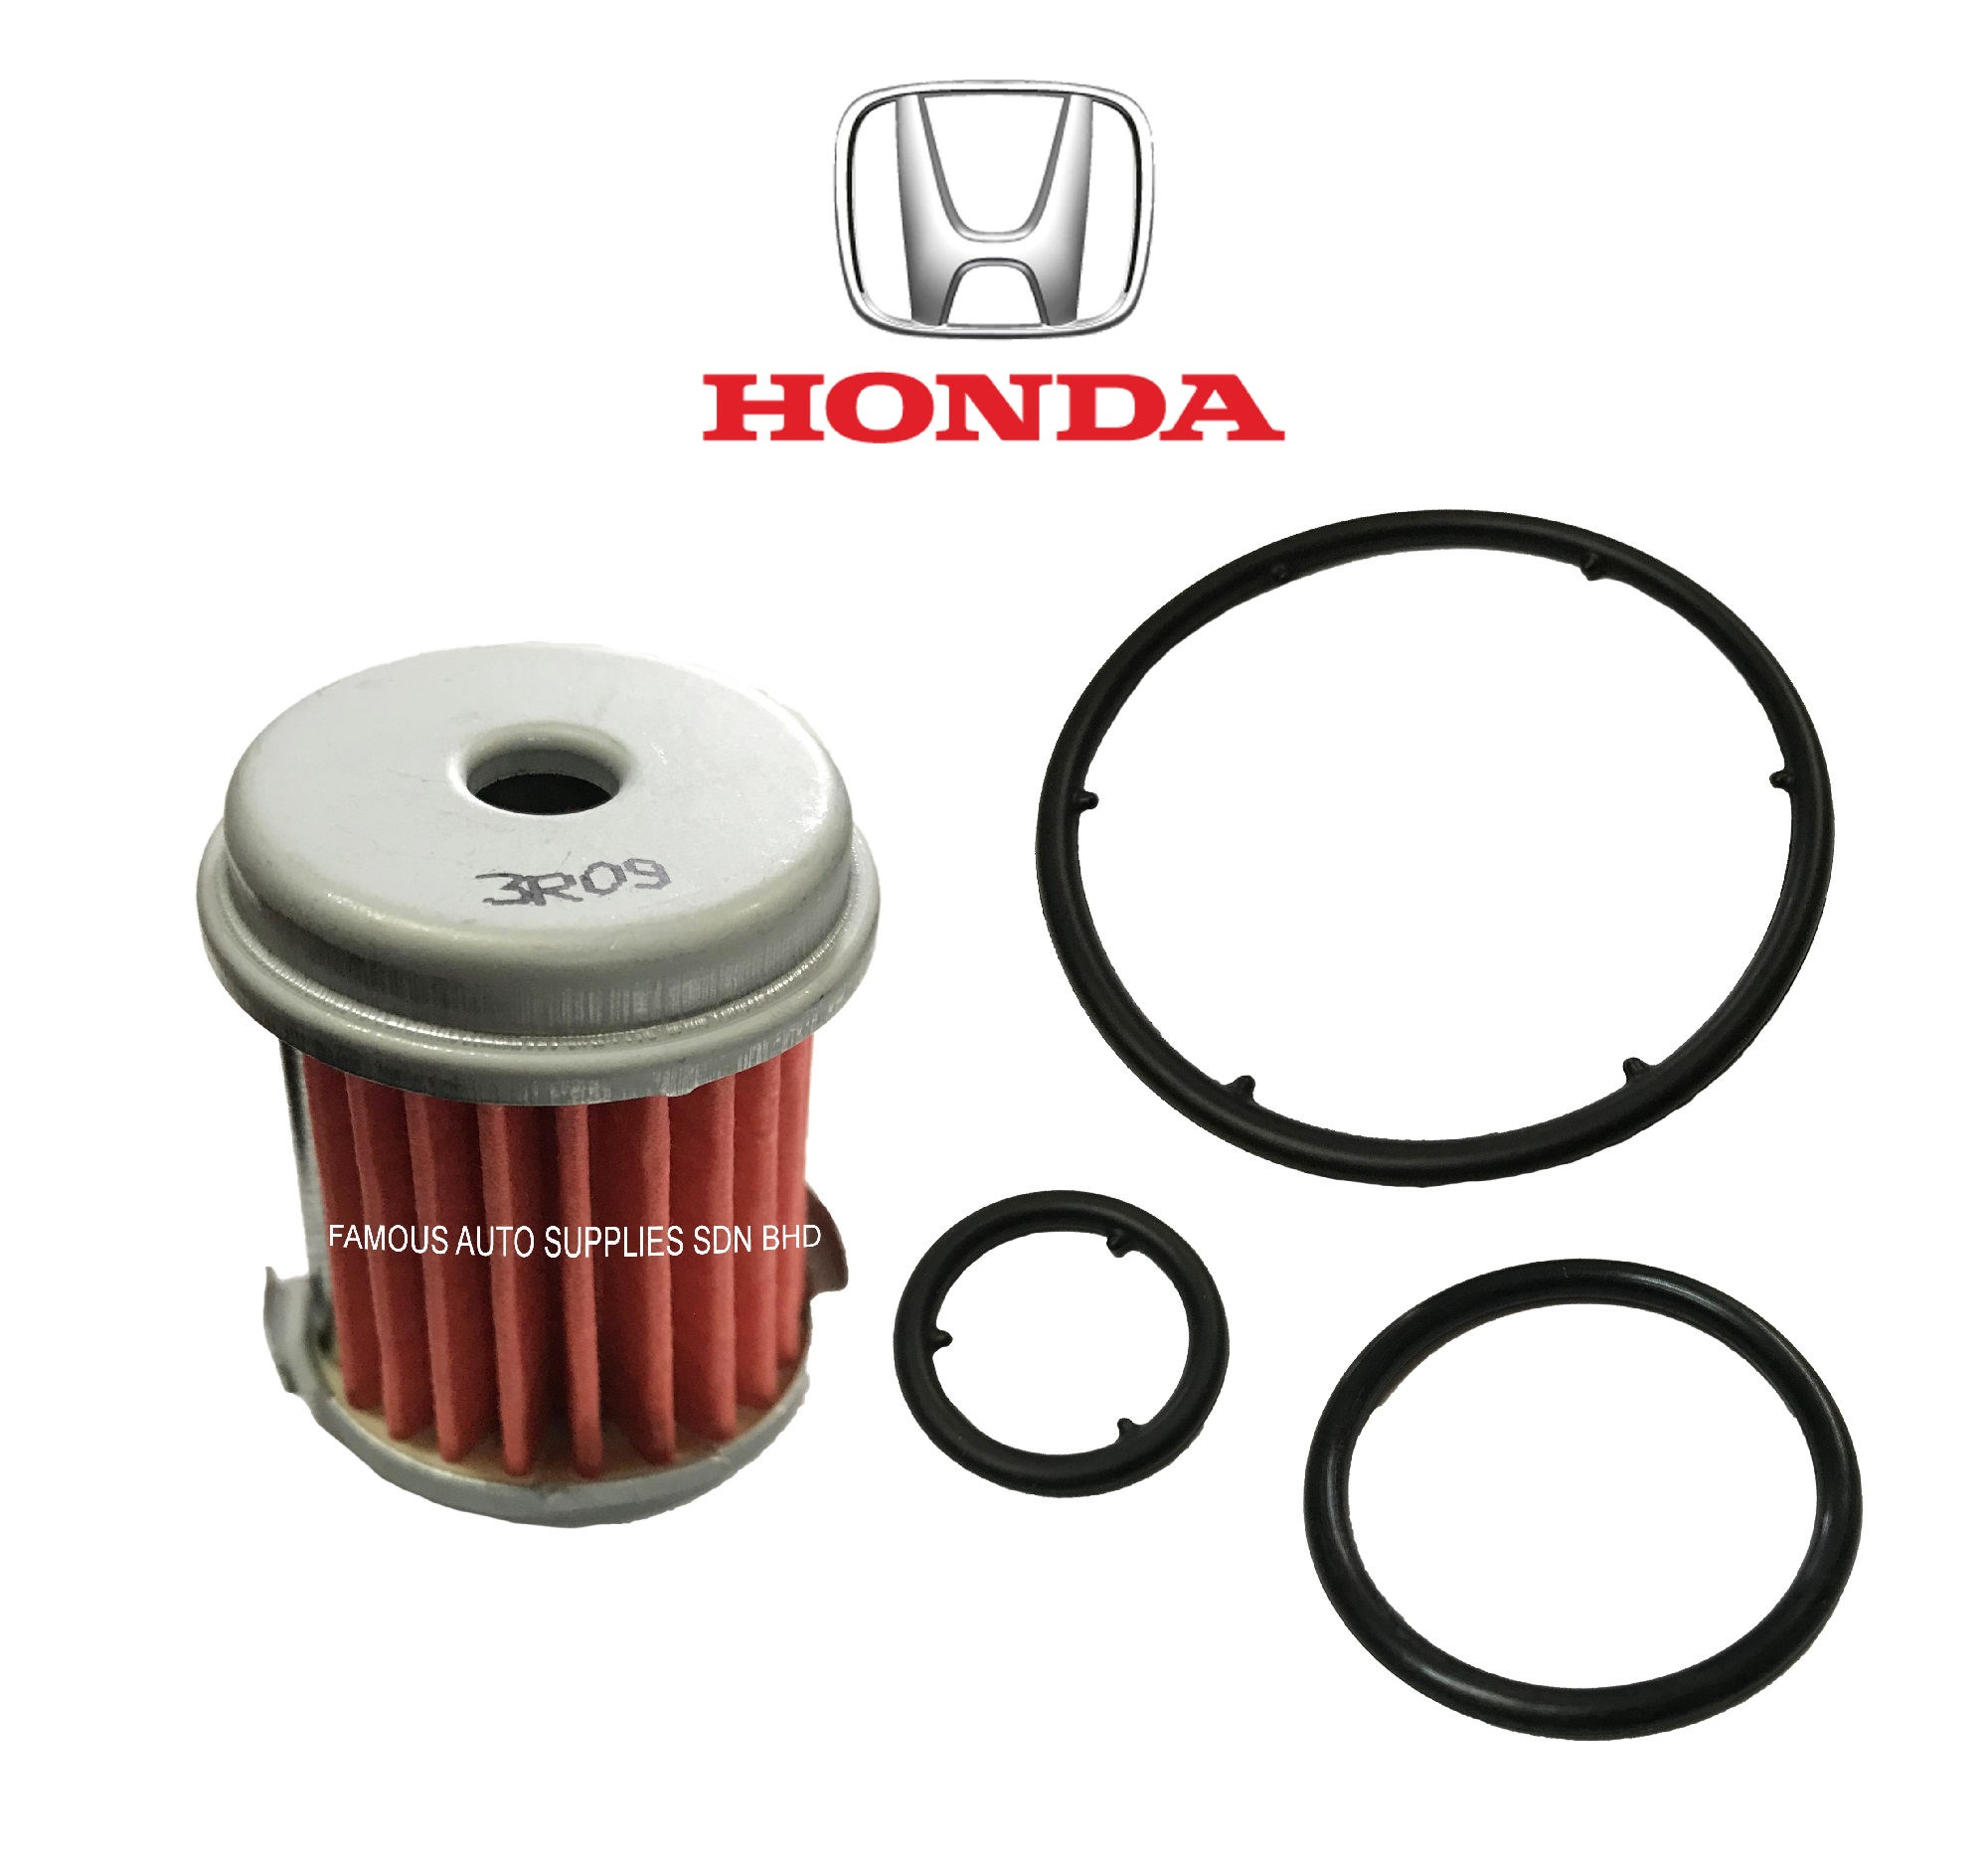 2014 Honda Civic Oil